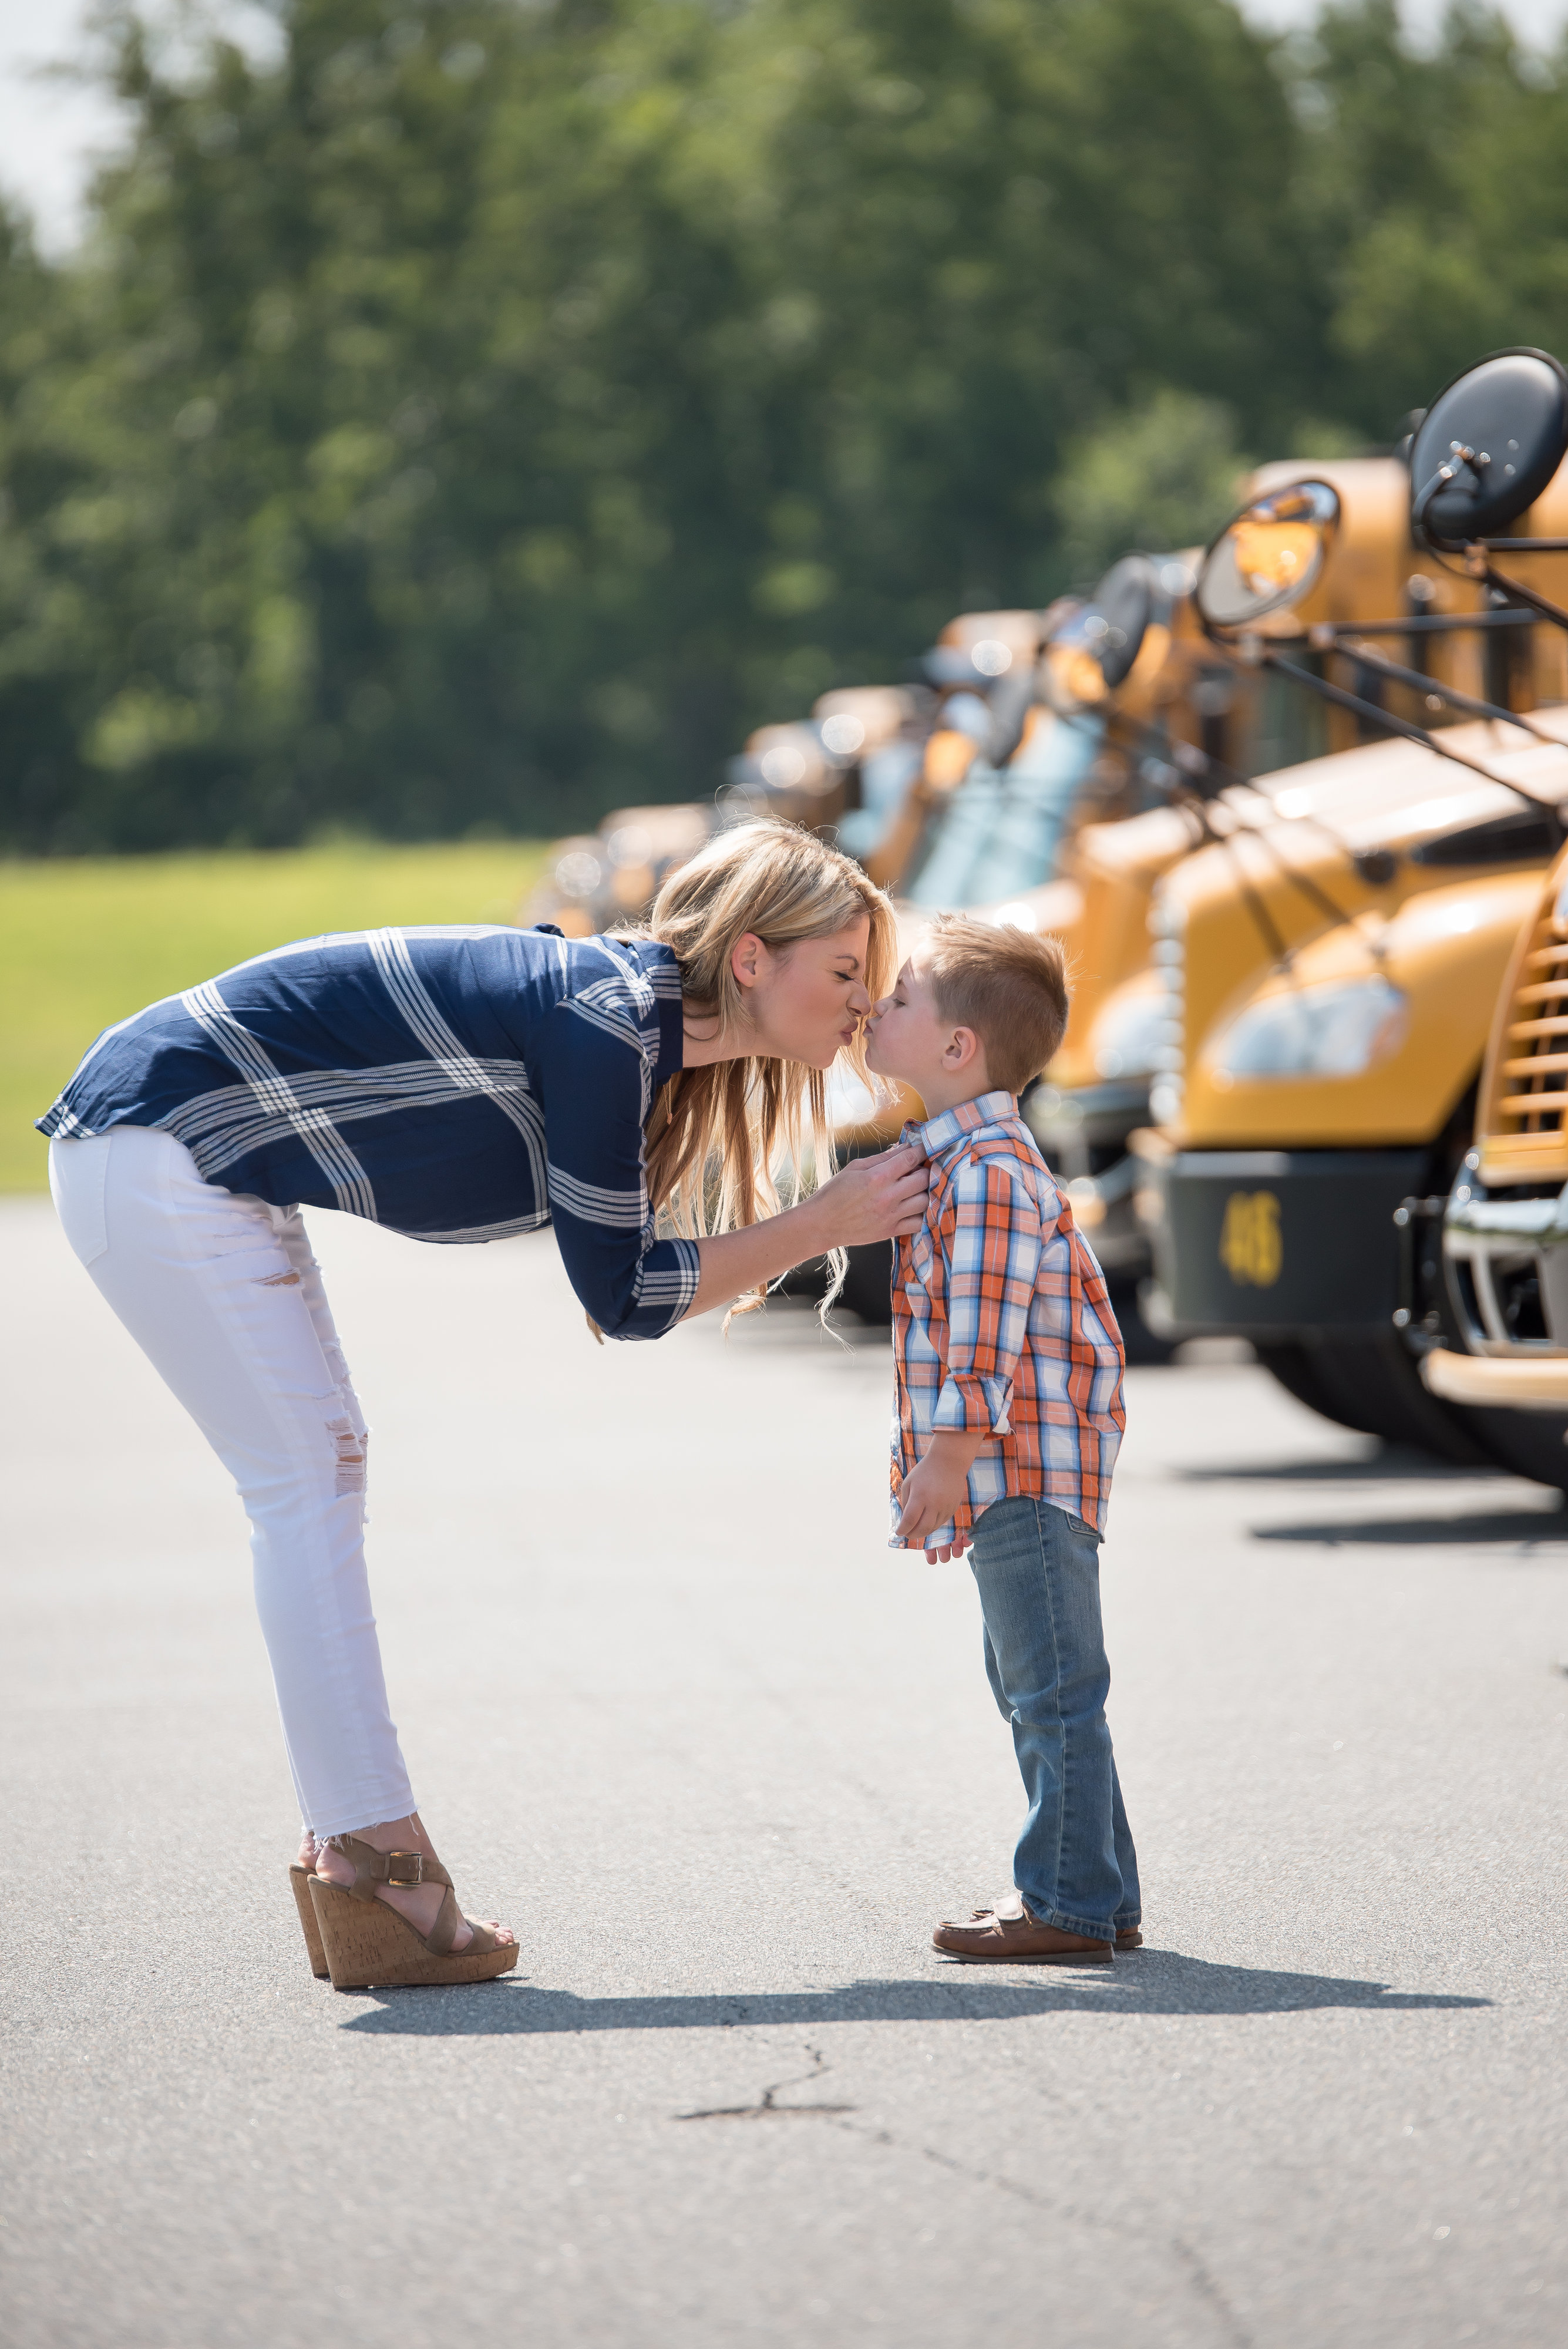 School Bus Safety Tips - Important Info Moms Need to Know